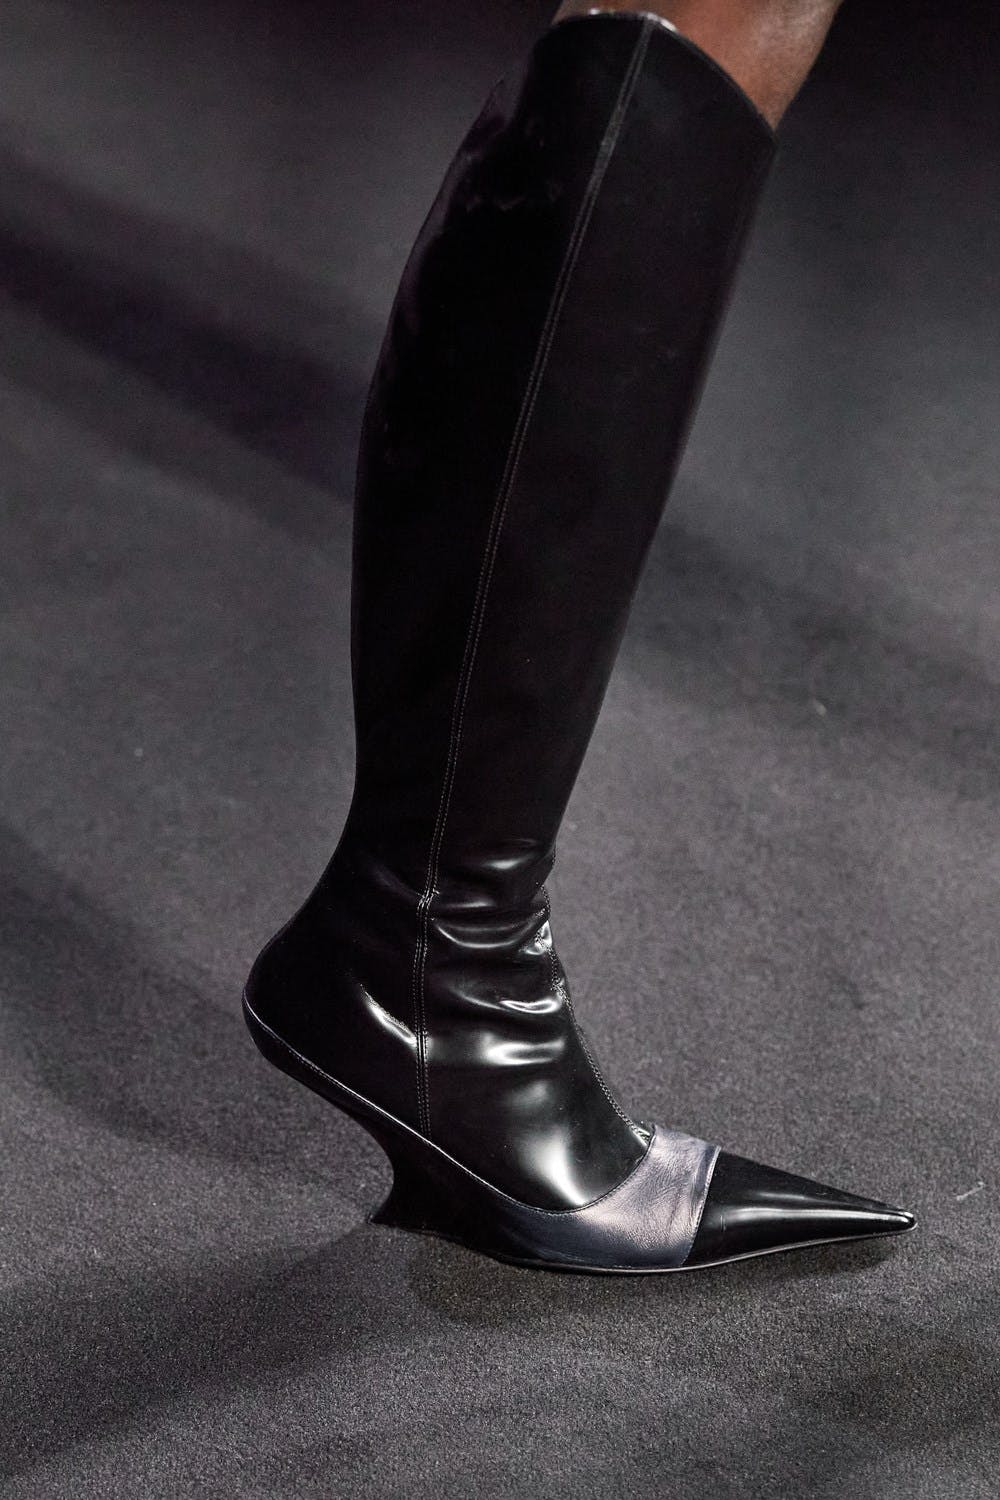 Mugler Runway Details High Color Blocked Boots in Black and Grey Leather Fall 20 RTW